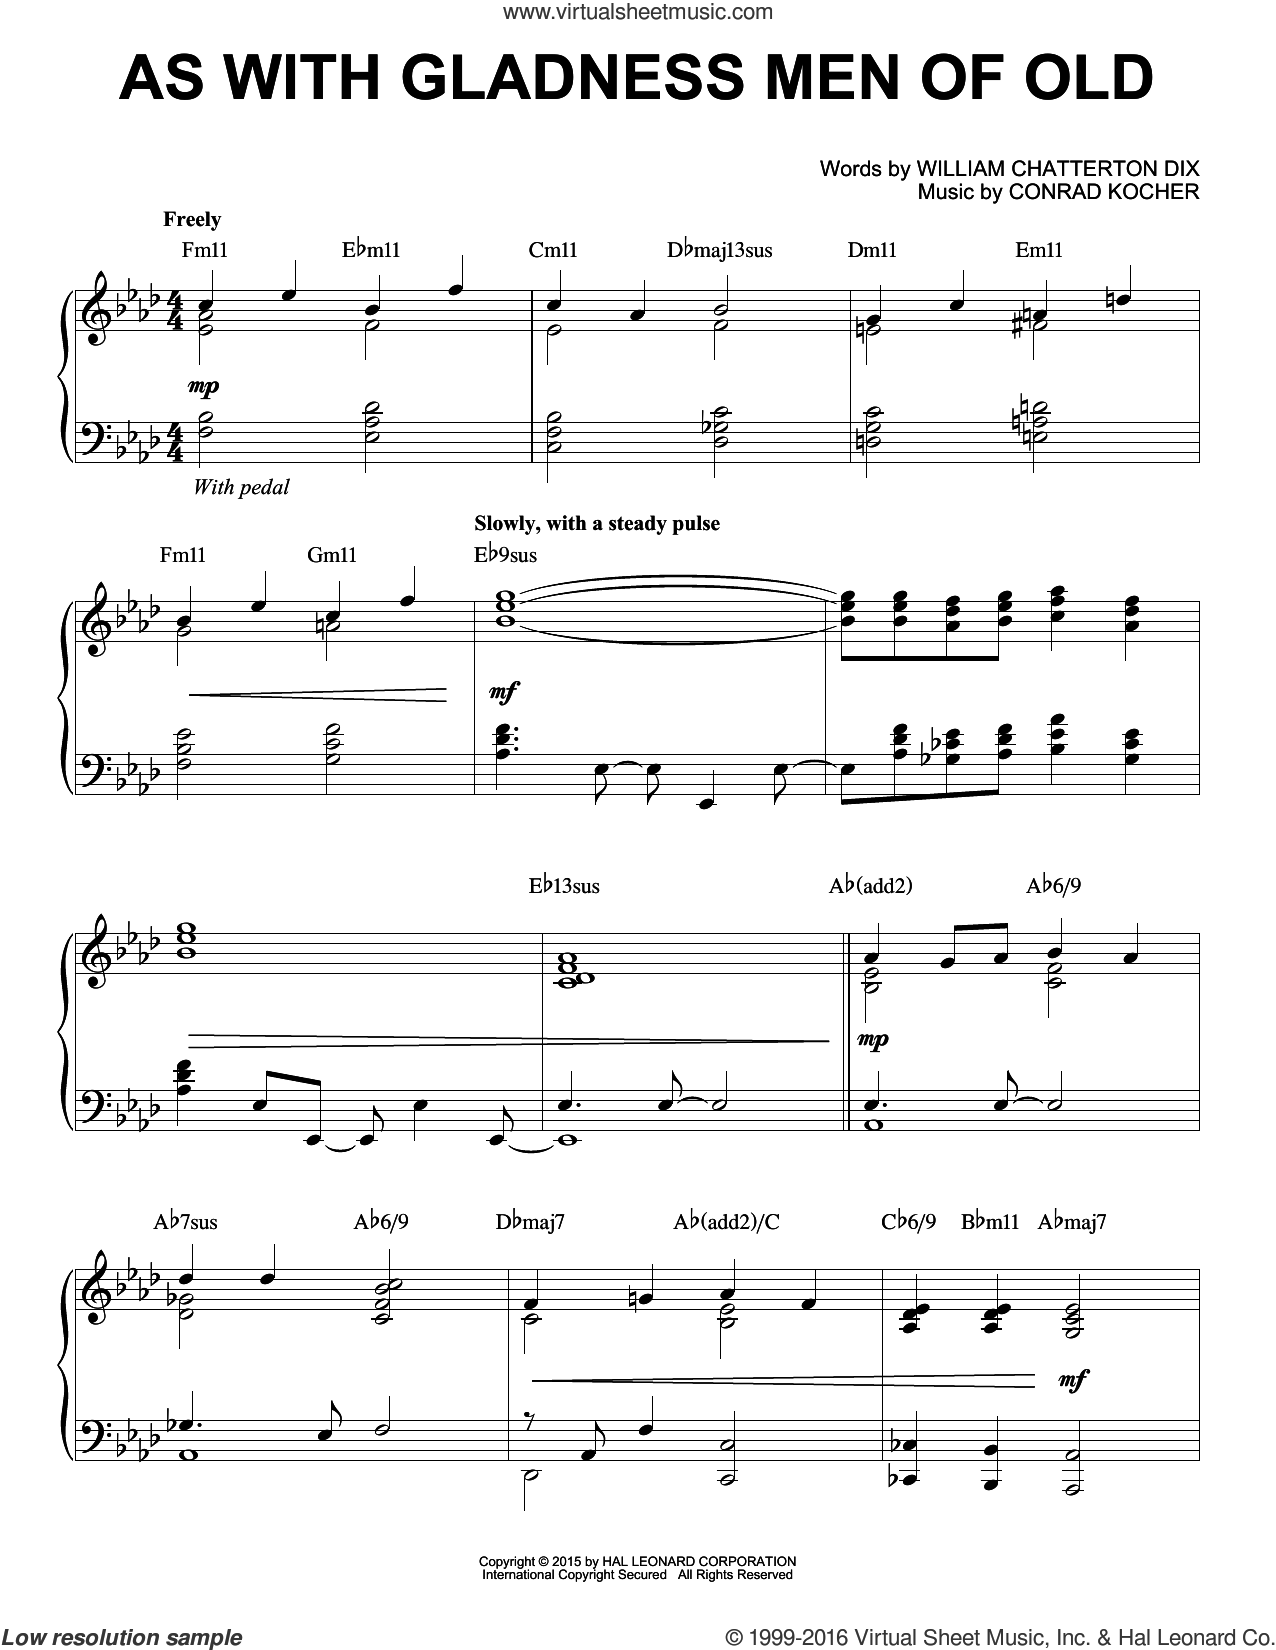 As With Gladness Men Of Old sheet music for piano solo by William Chatterton Dix and Conrad Kocher. Score Image Preview.